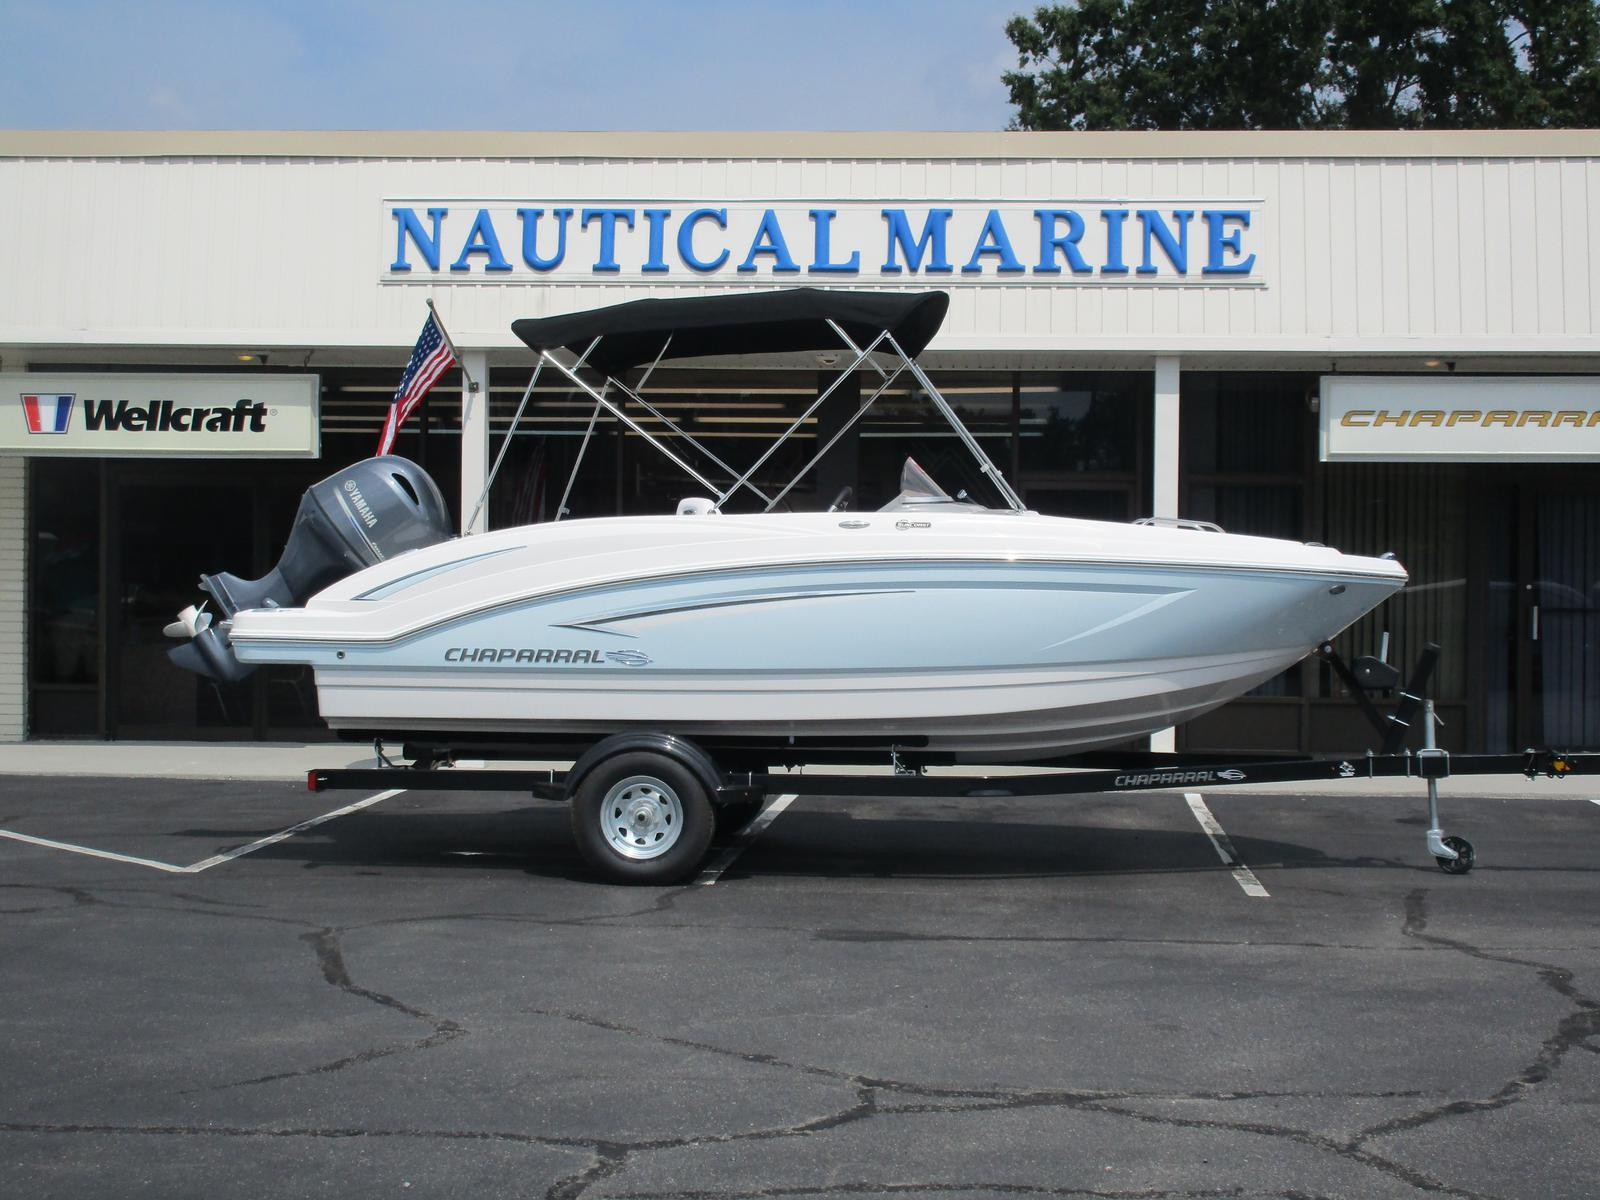 Boats from Chaparral and Four Winns Nautical Marine Inc